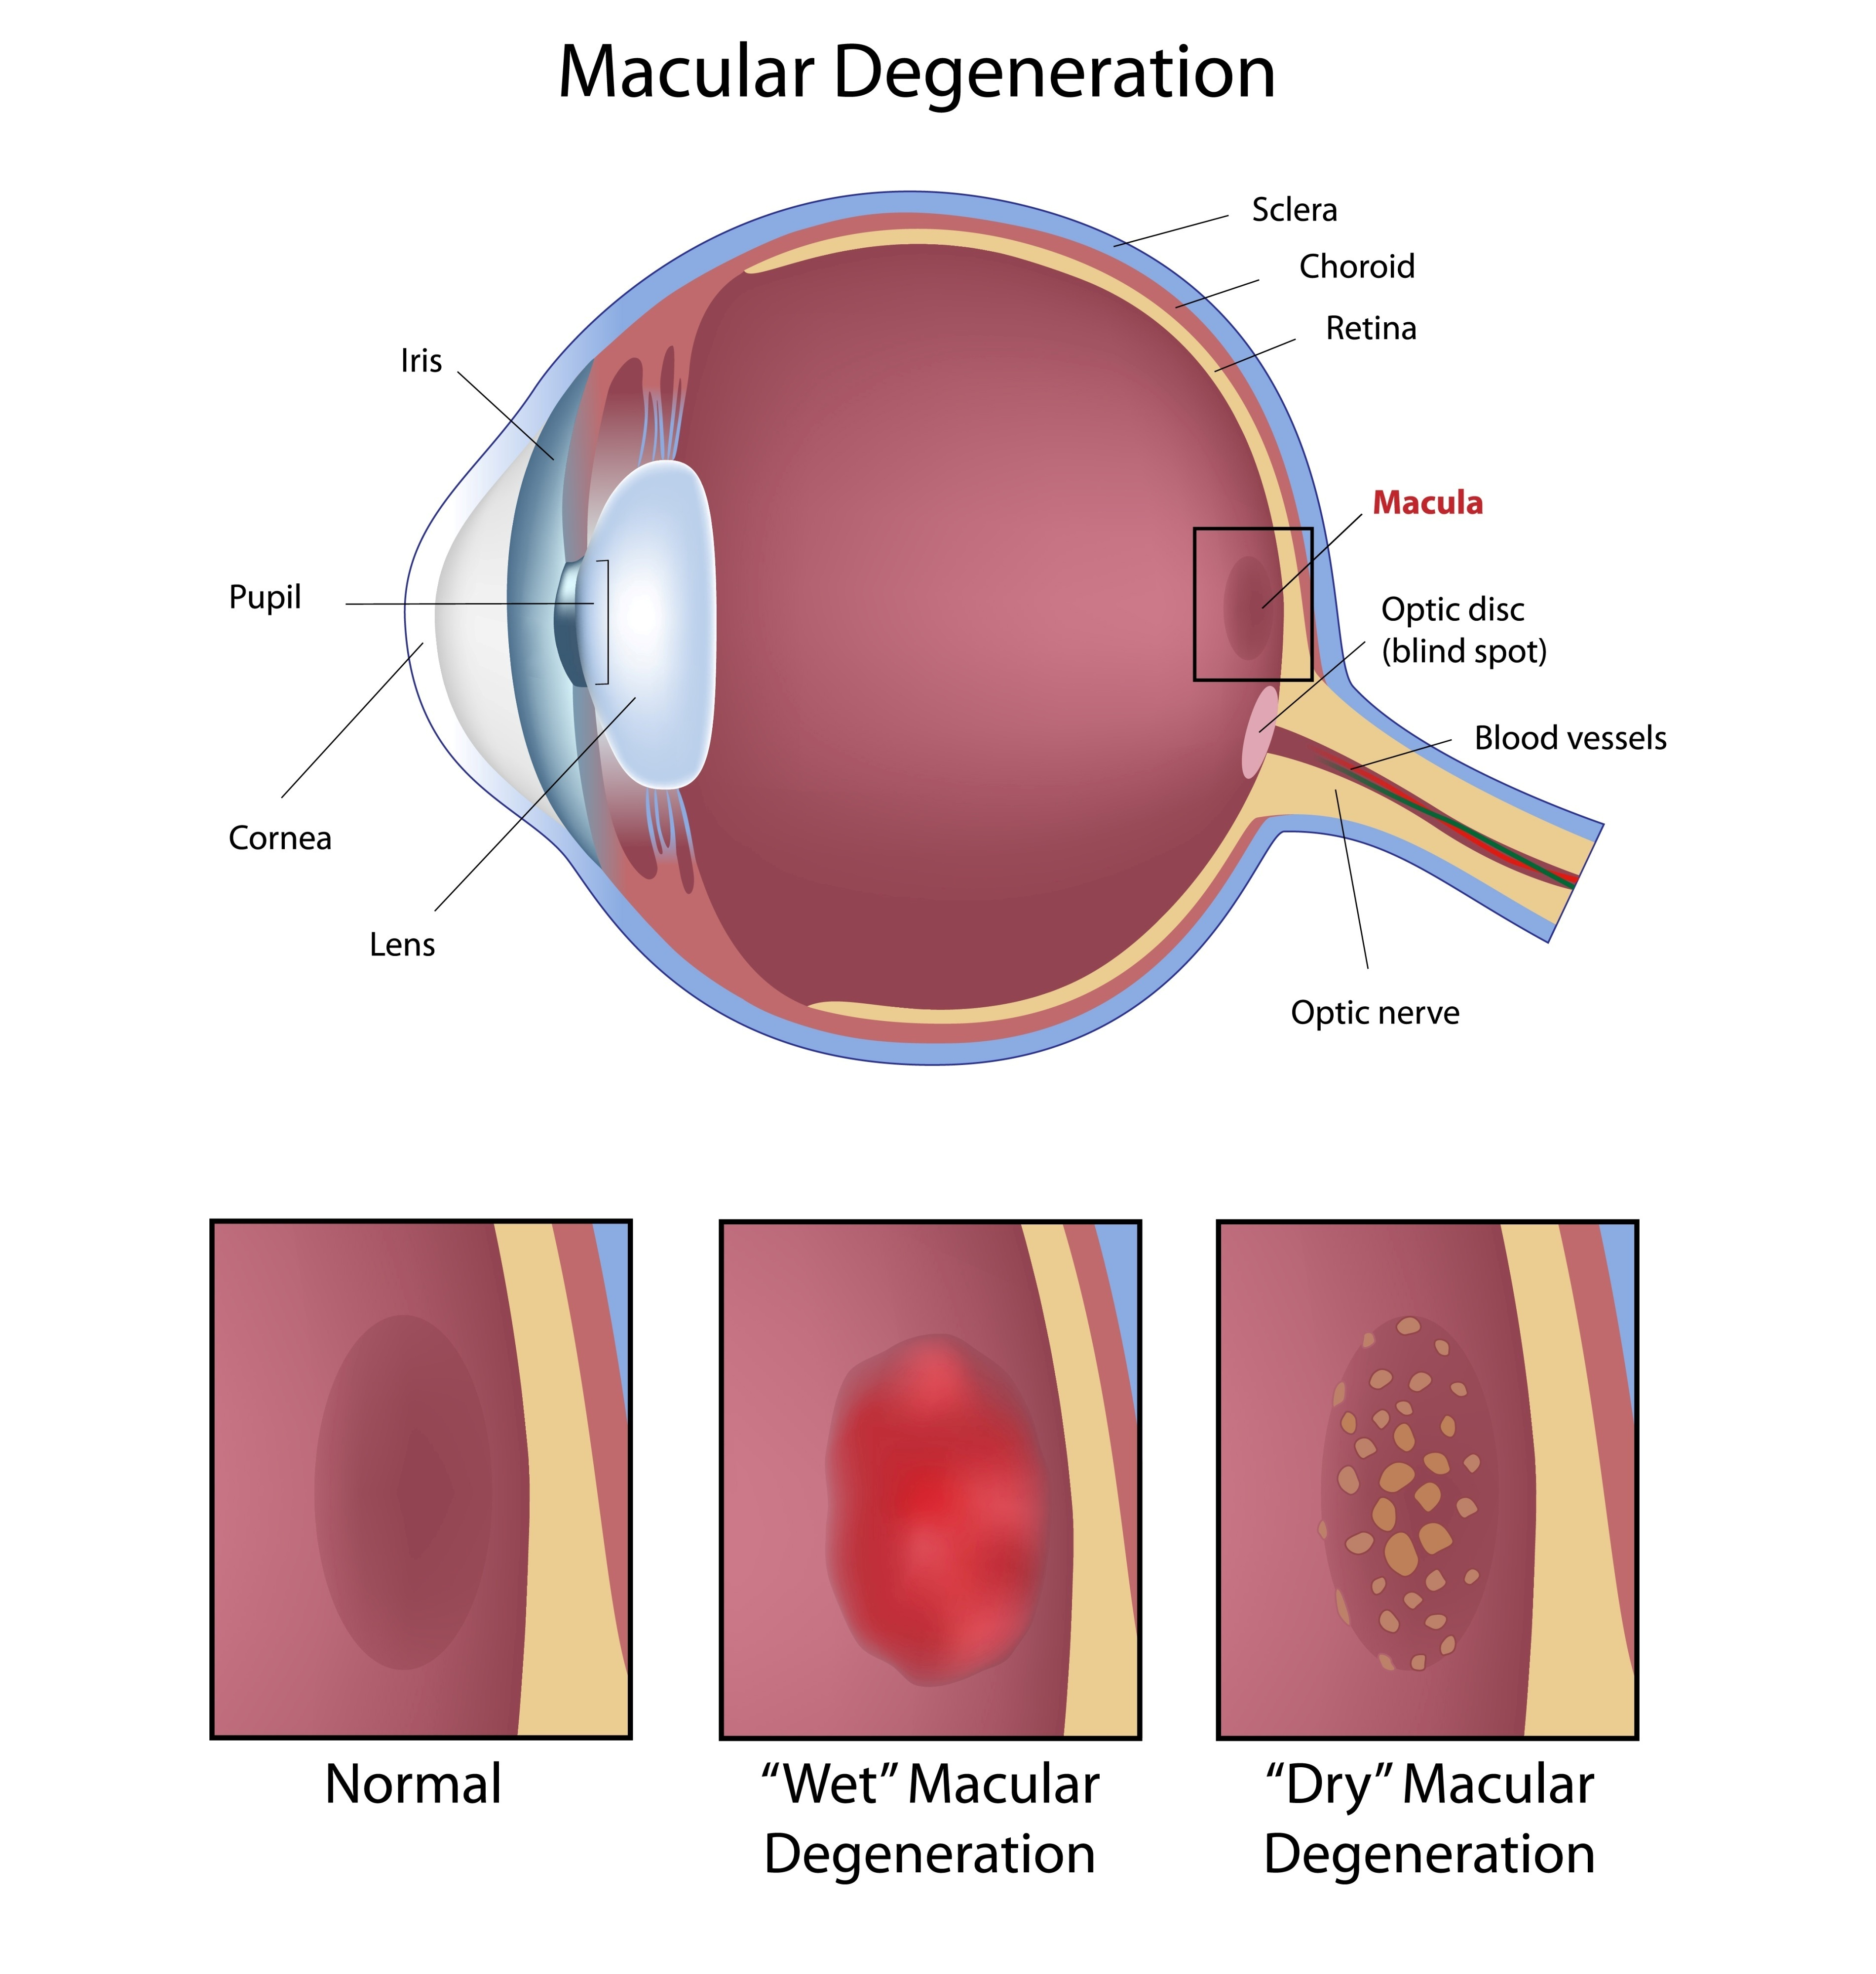 Dry Macular Degeneration Diagram